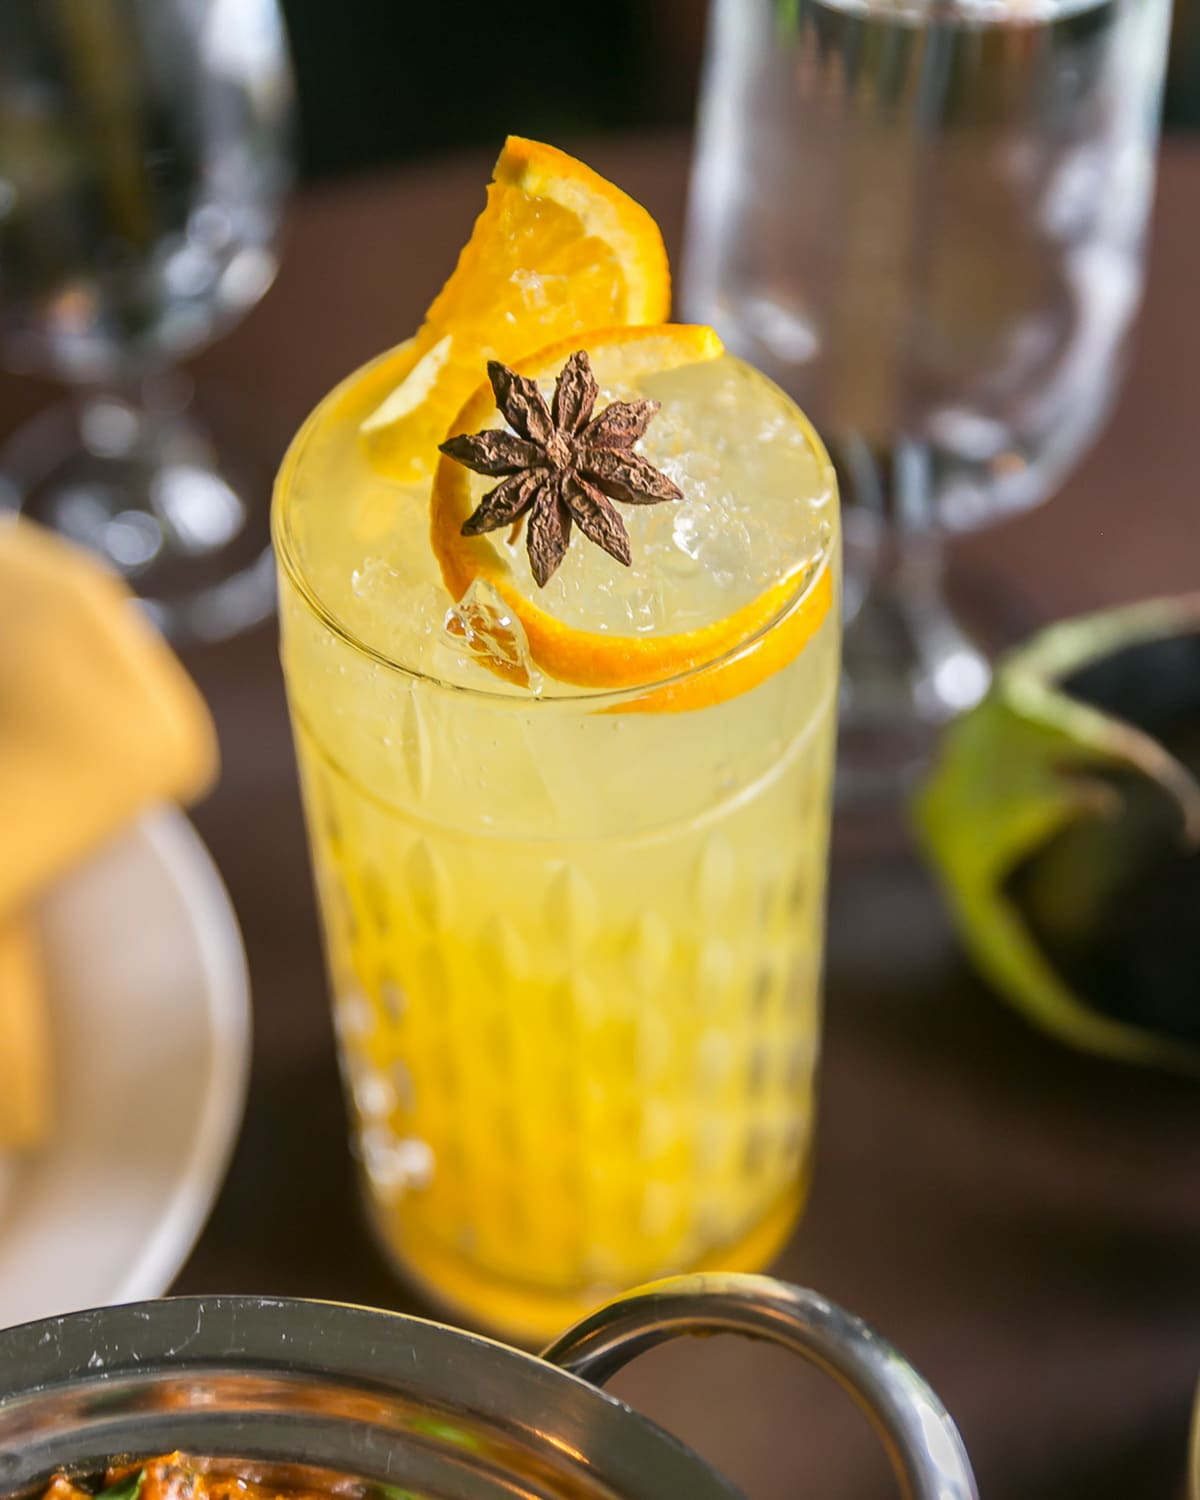 Star Trooper - Star anise infused gin